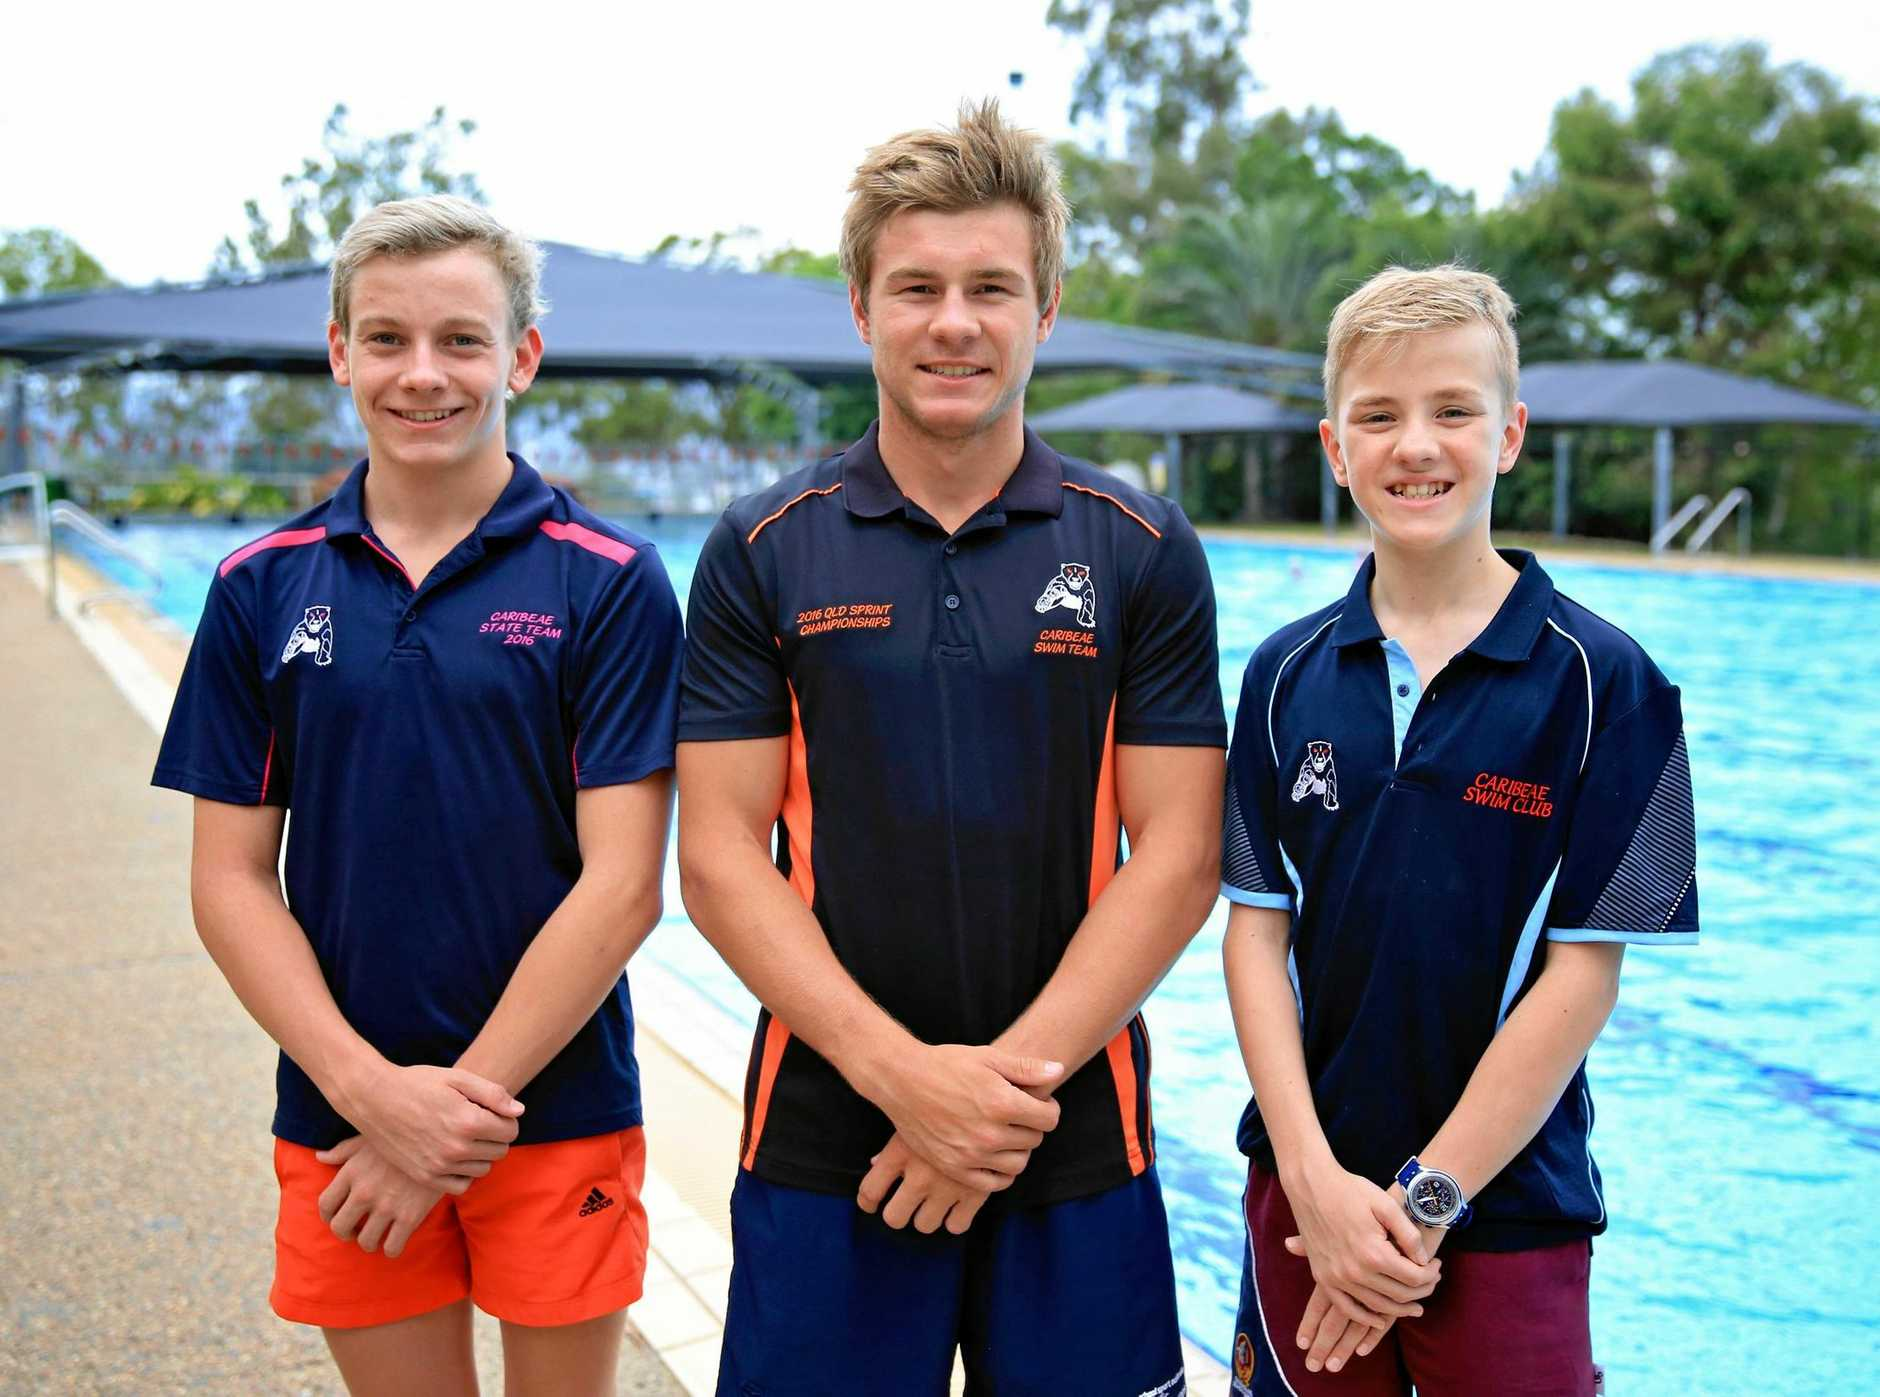 READY TO RACE: Rockhampton Grammar trio (from left) Joe Milburn, Jacob Spark and Will Salmond will hit the water at the Pacific School Games this weekend.